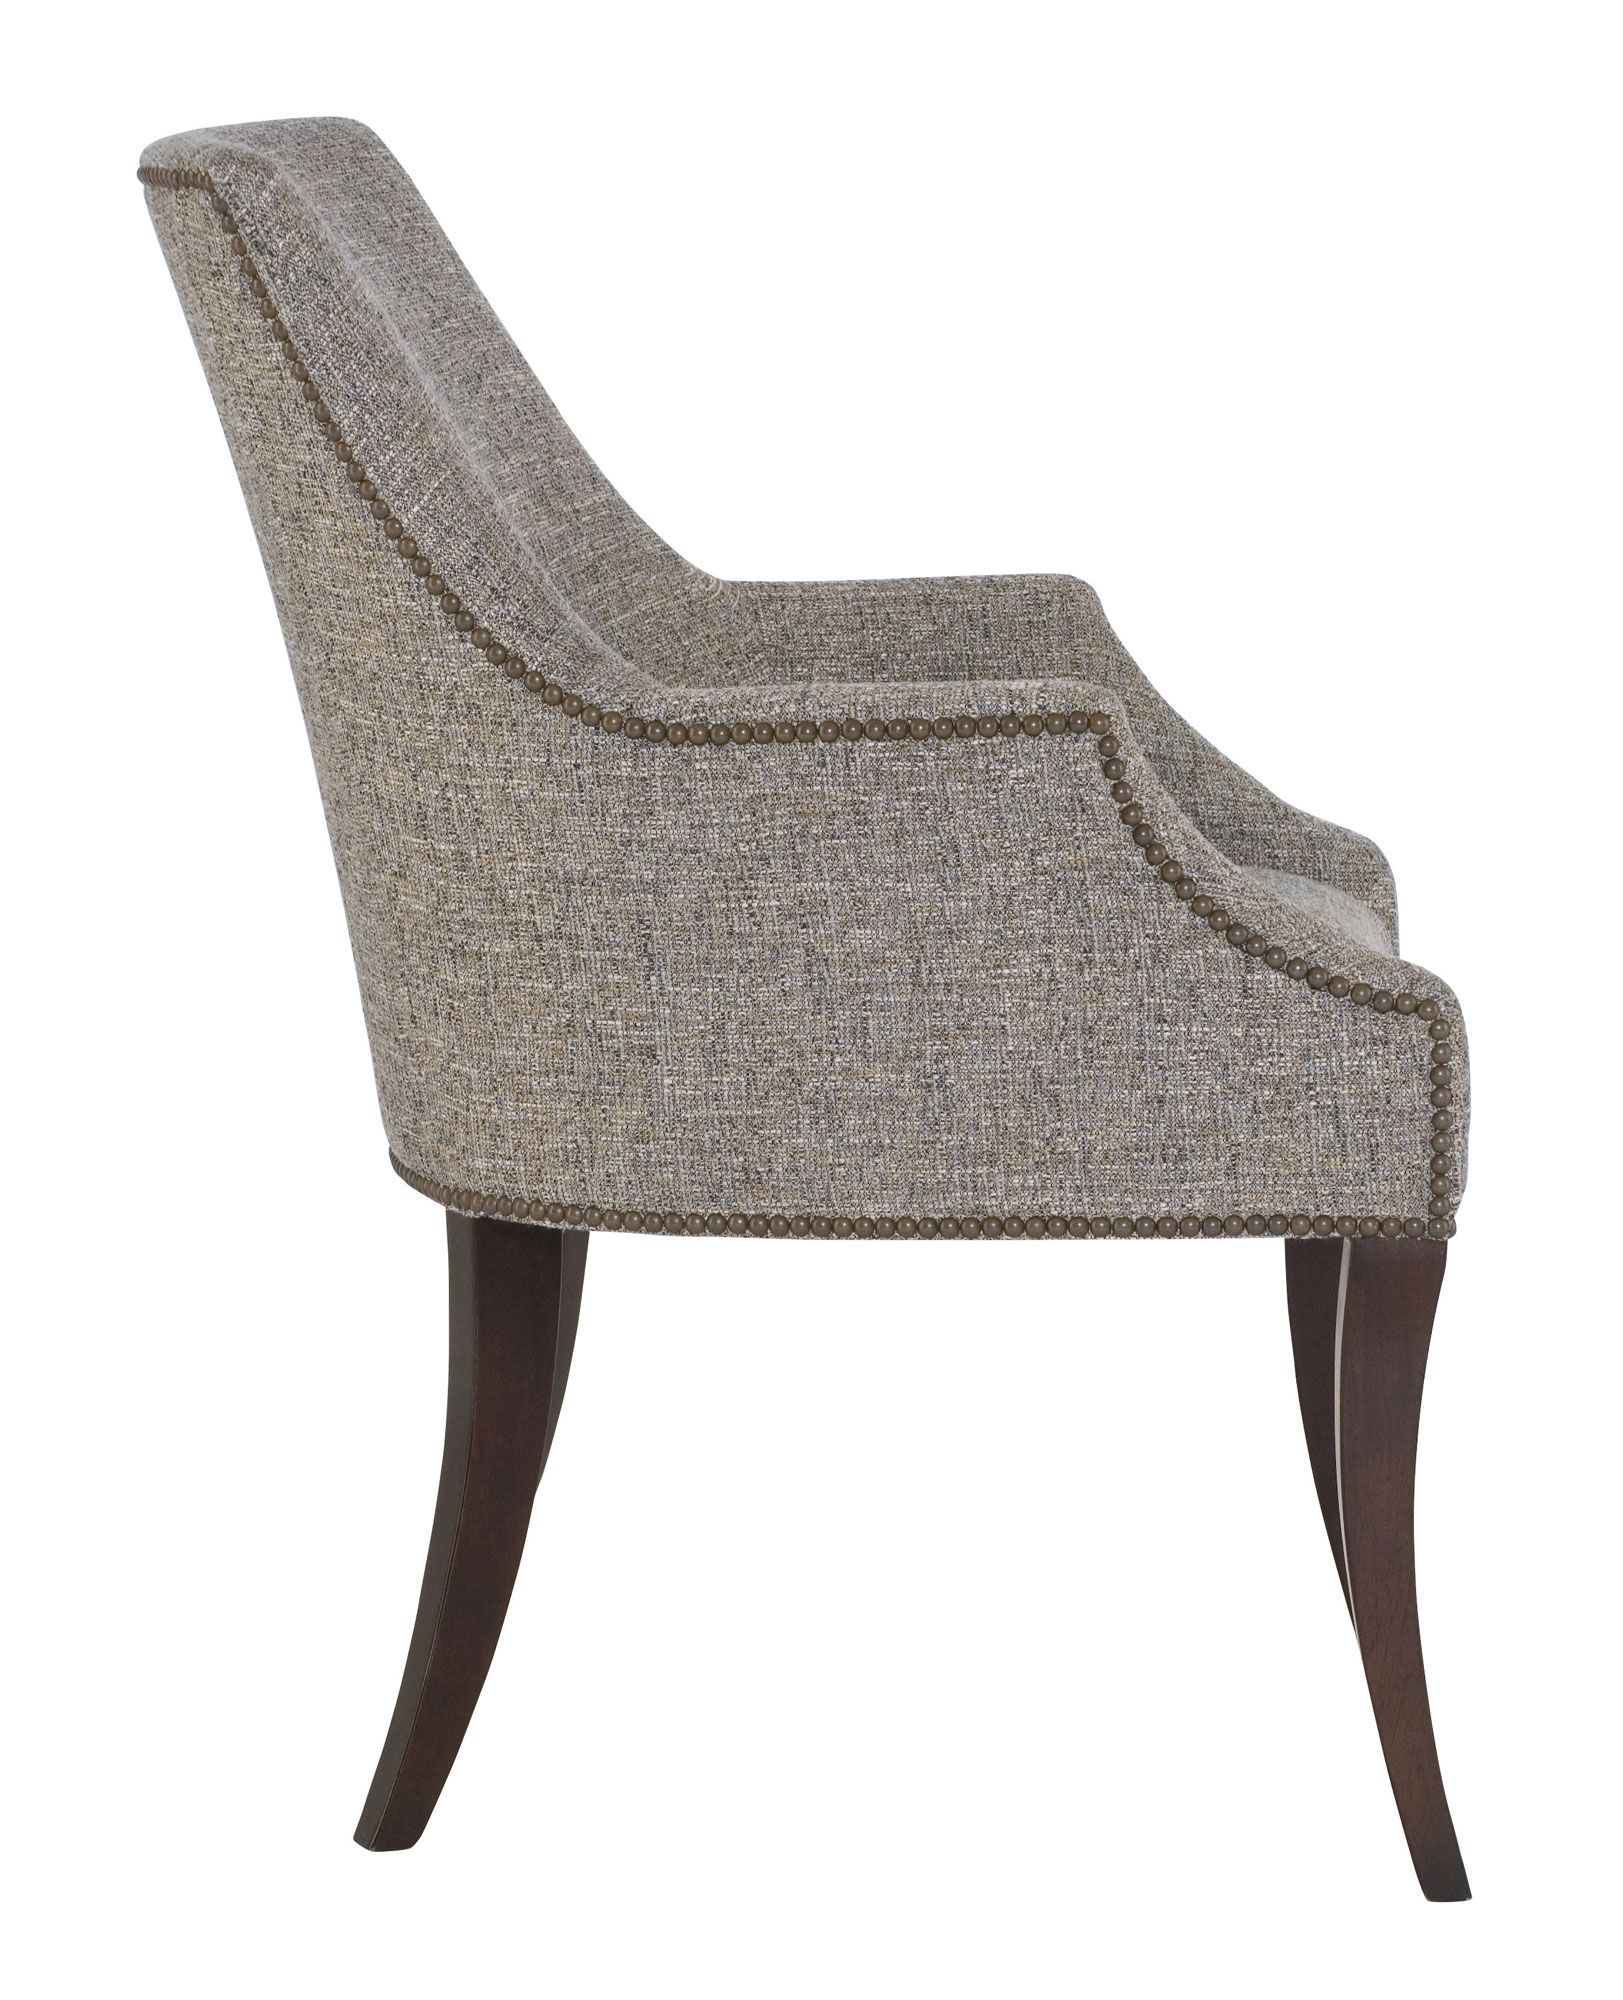 Keeley Dining Chair Bernhardt 701 71 Com Or Any Fabric Same Price Tax Freight Local Delivery Additional